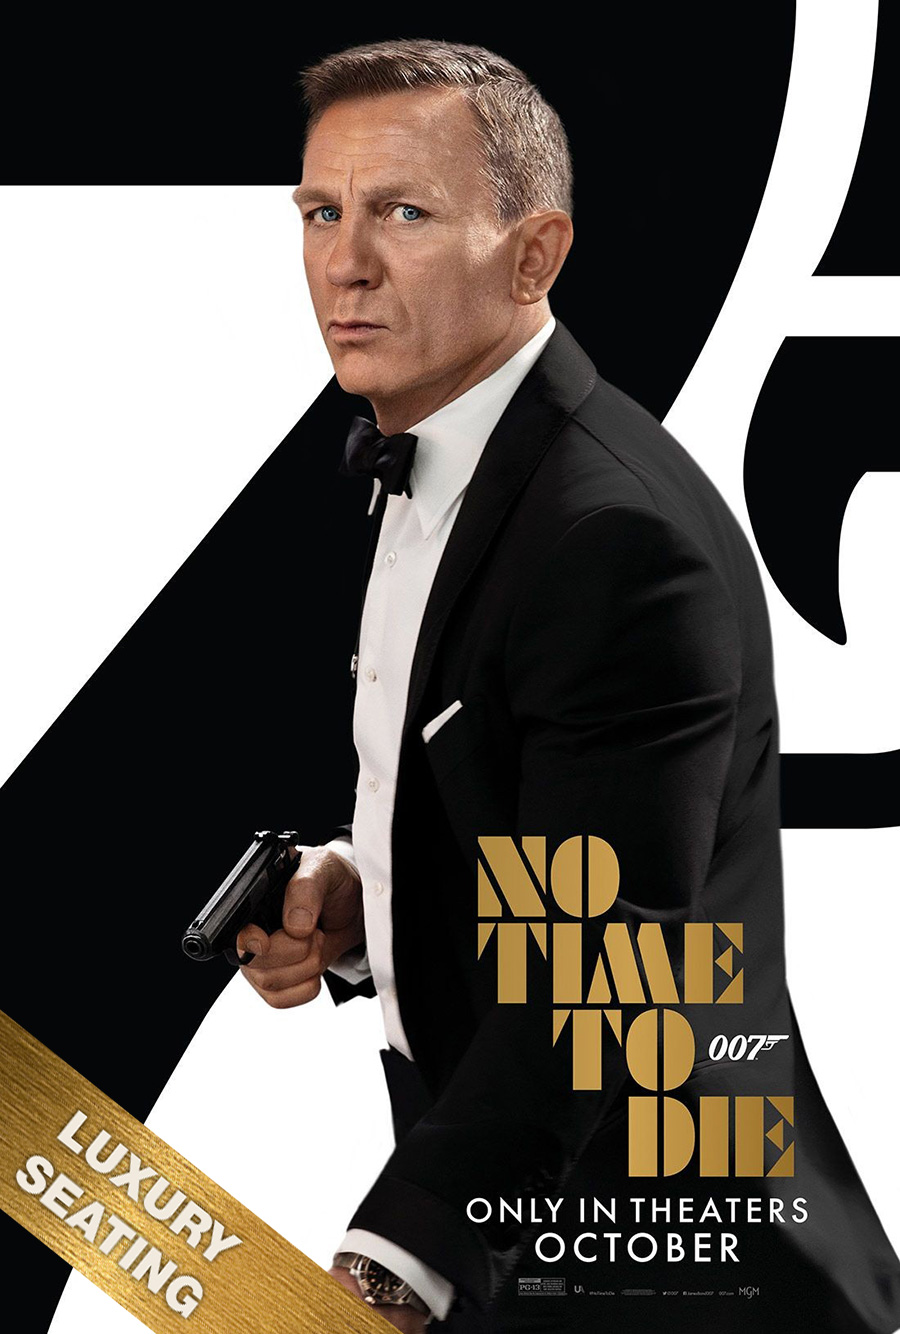 Poster for No Time To Die (LUX)